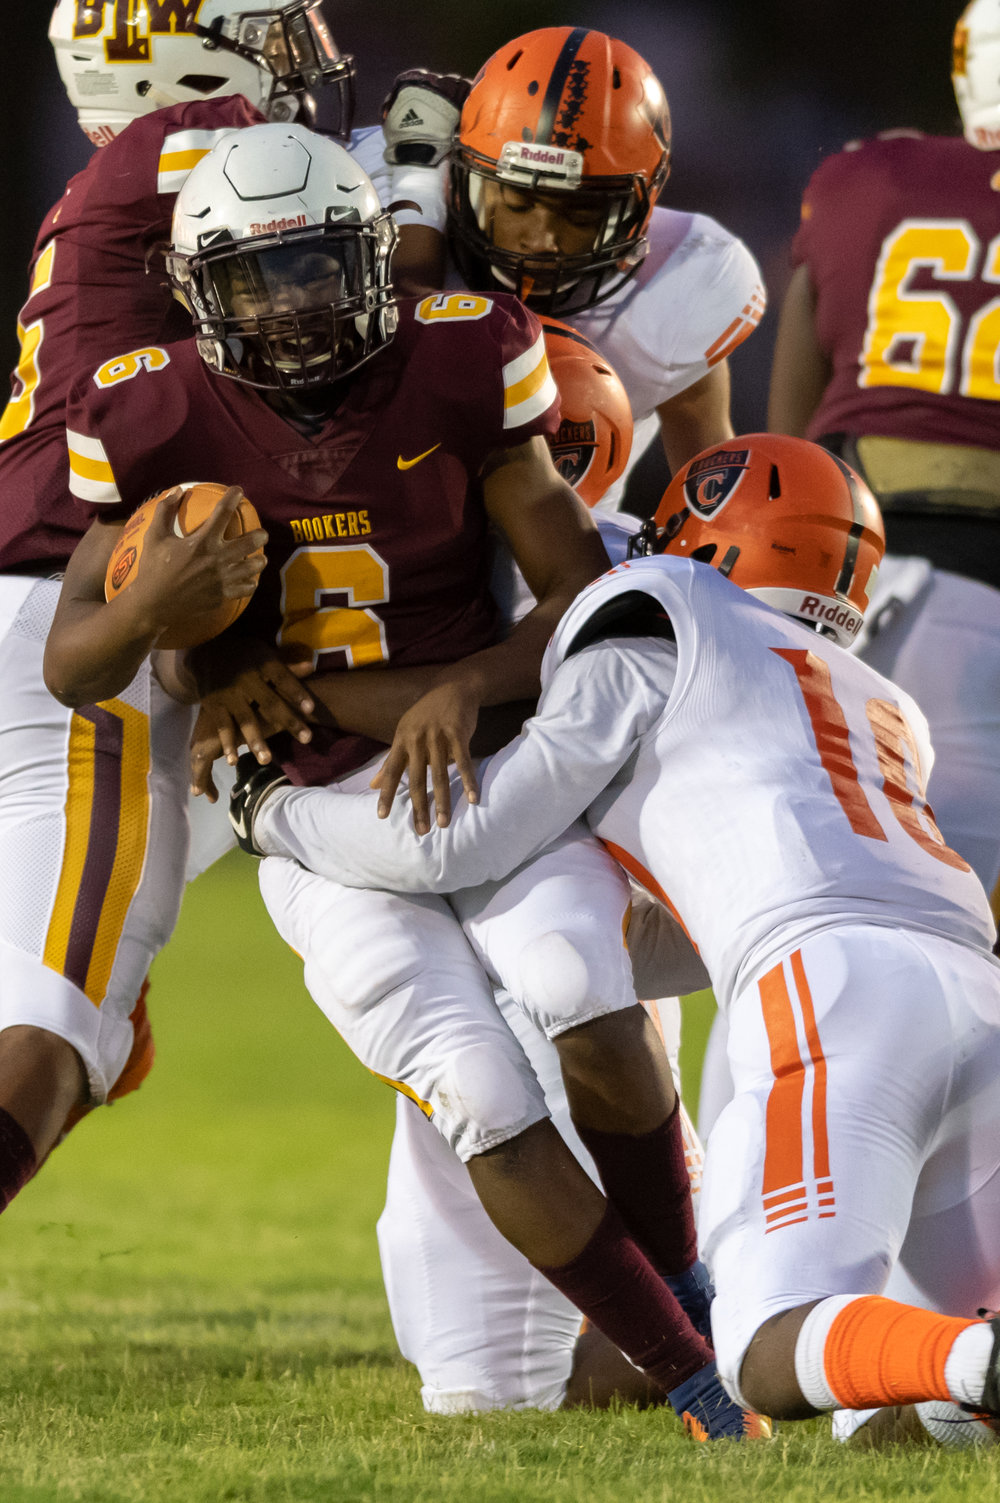 Booker T Washington's Rodney Hammond works to break a tackle by Churchland's Jarel Ware during the Friday, September 28, 2018 game at Booker T Washington High School. Booker T Washington leads Churchland 21 to 6 in the second quarter.